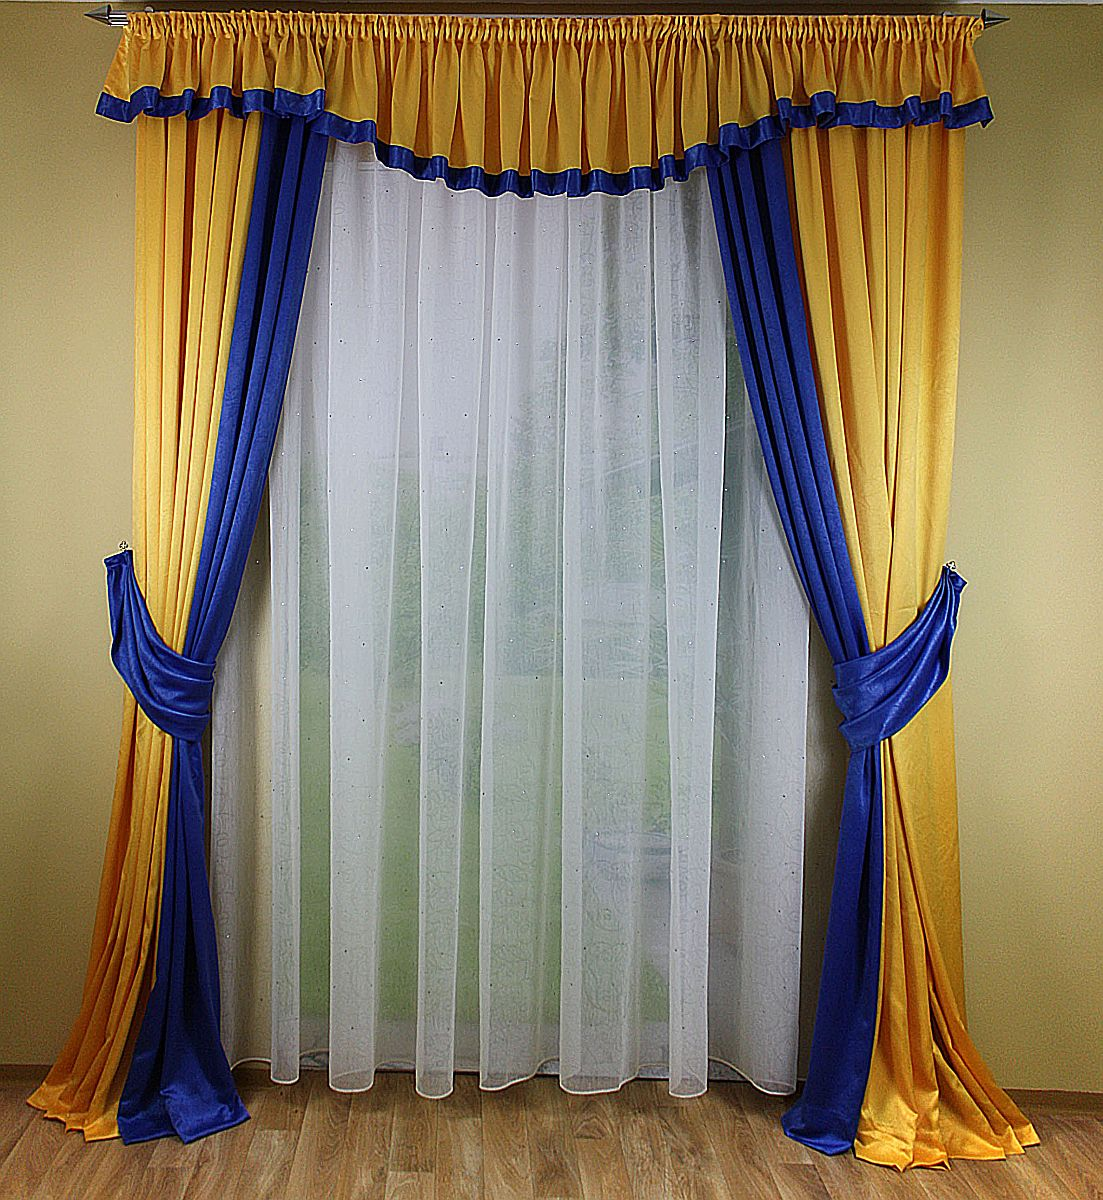 Floral Gardinen Und Pelmet Am: Finished Curtain With Pelmet In Blue And Yellow